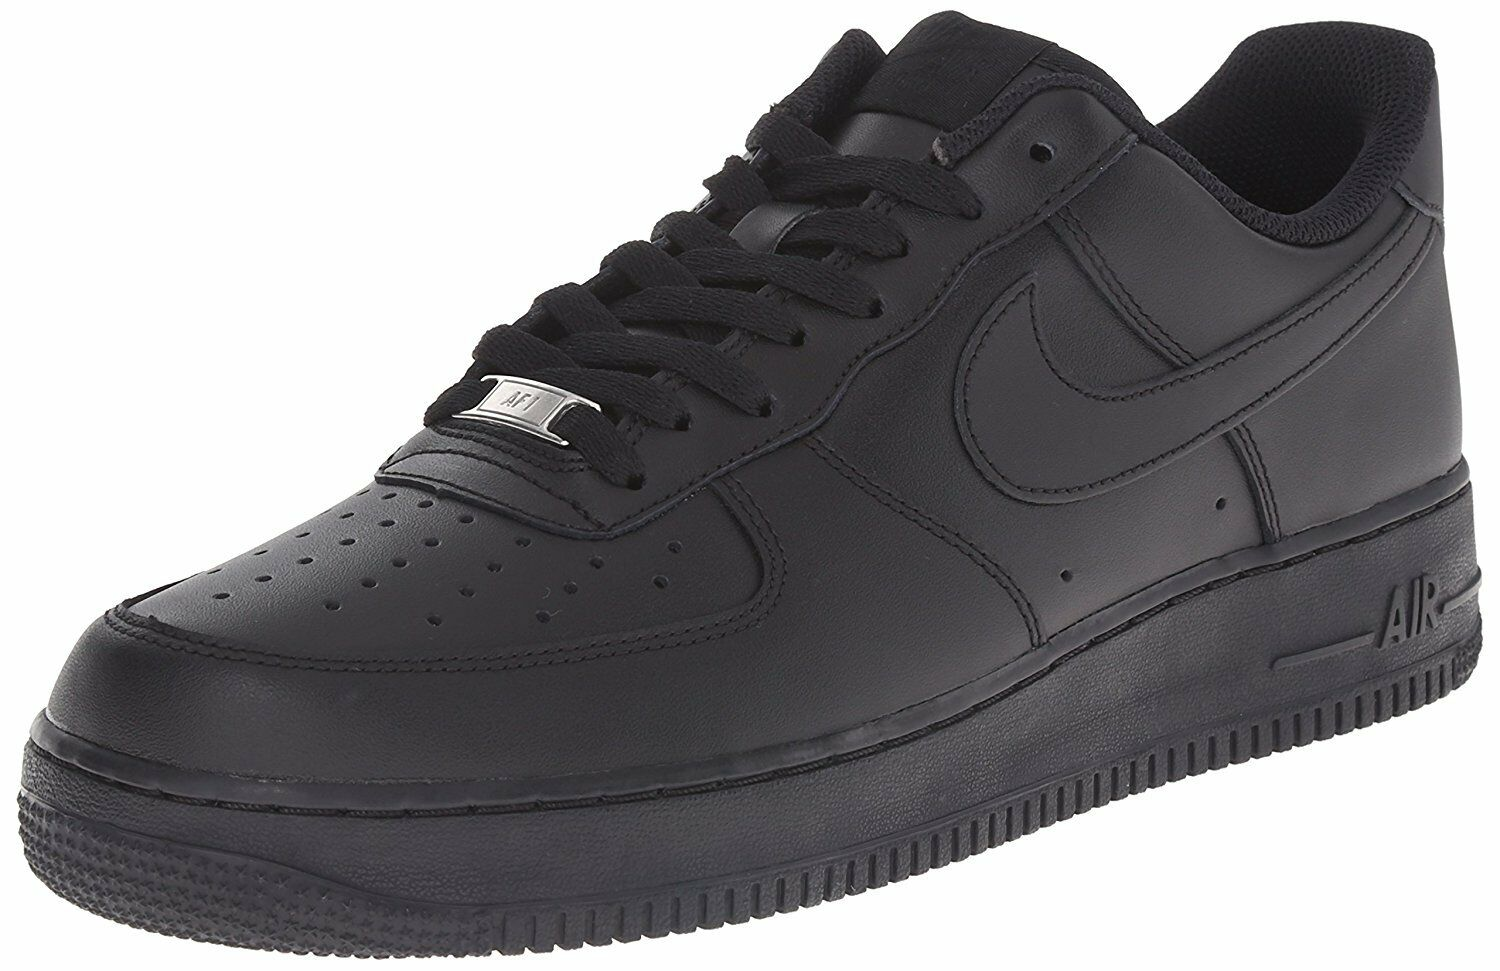 Nike Uomo air force 1 basket scarpa 315122-001 nero nero